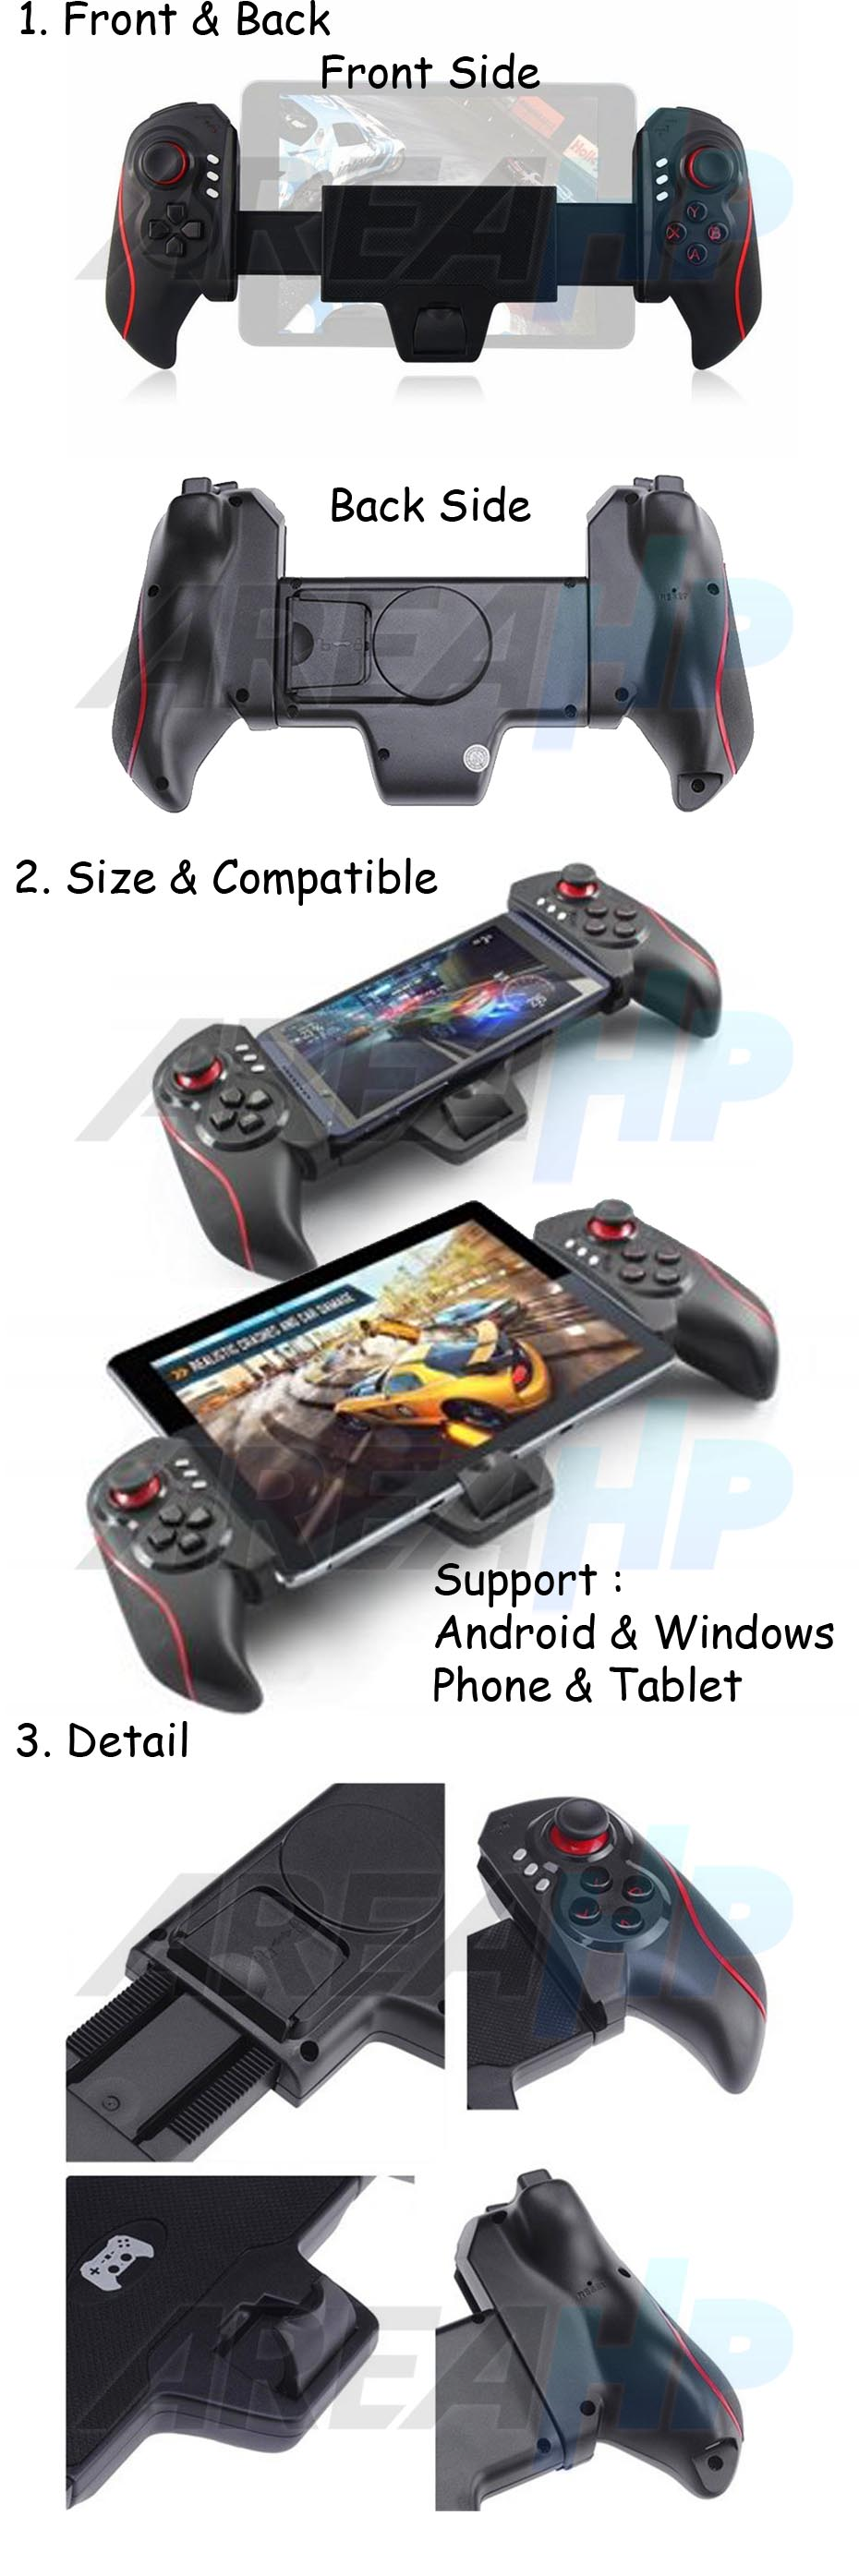 gamepad-game-controller-joy-stick-for-all-tablet-android-windows-btc-938-overview